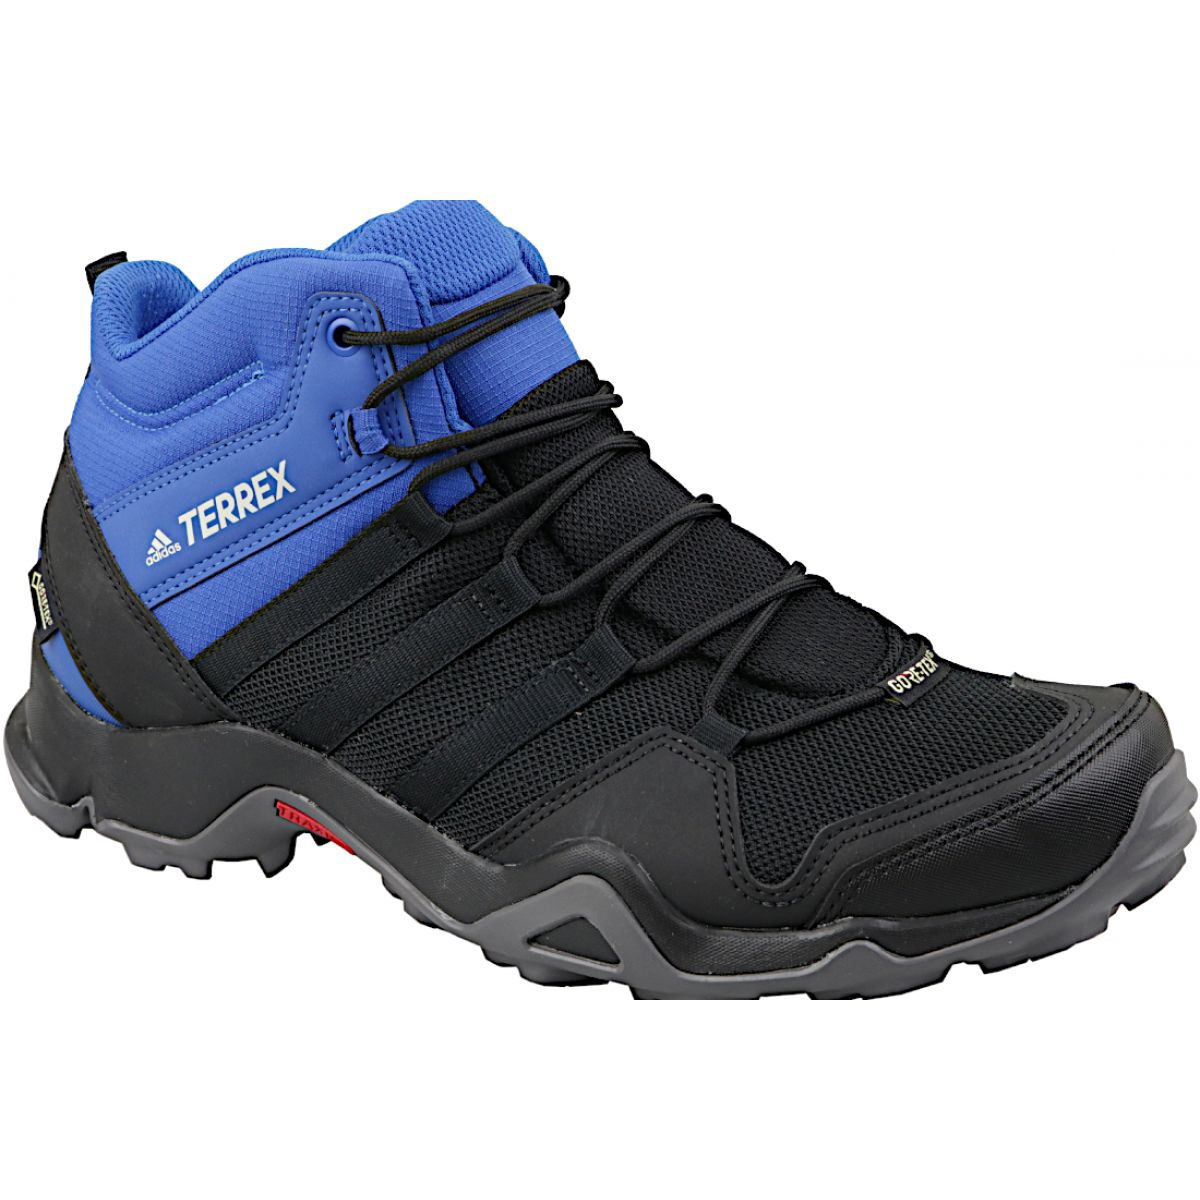 Details about Adidas Terrex AX2R Mid Gtx M AC8035 shoes